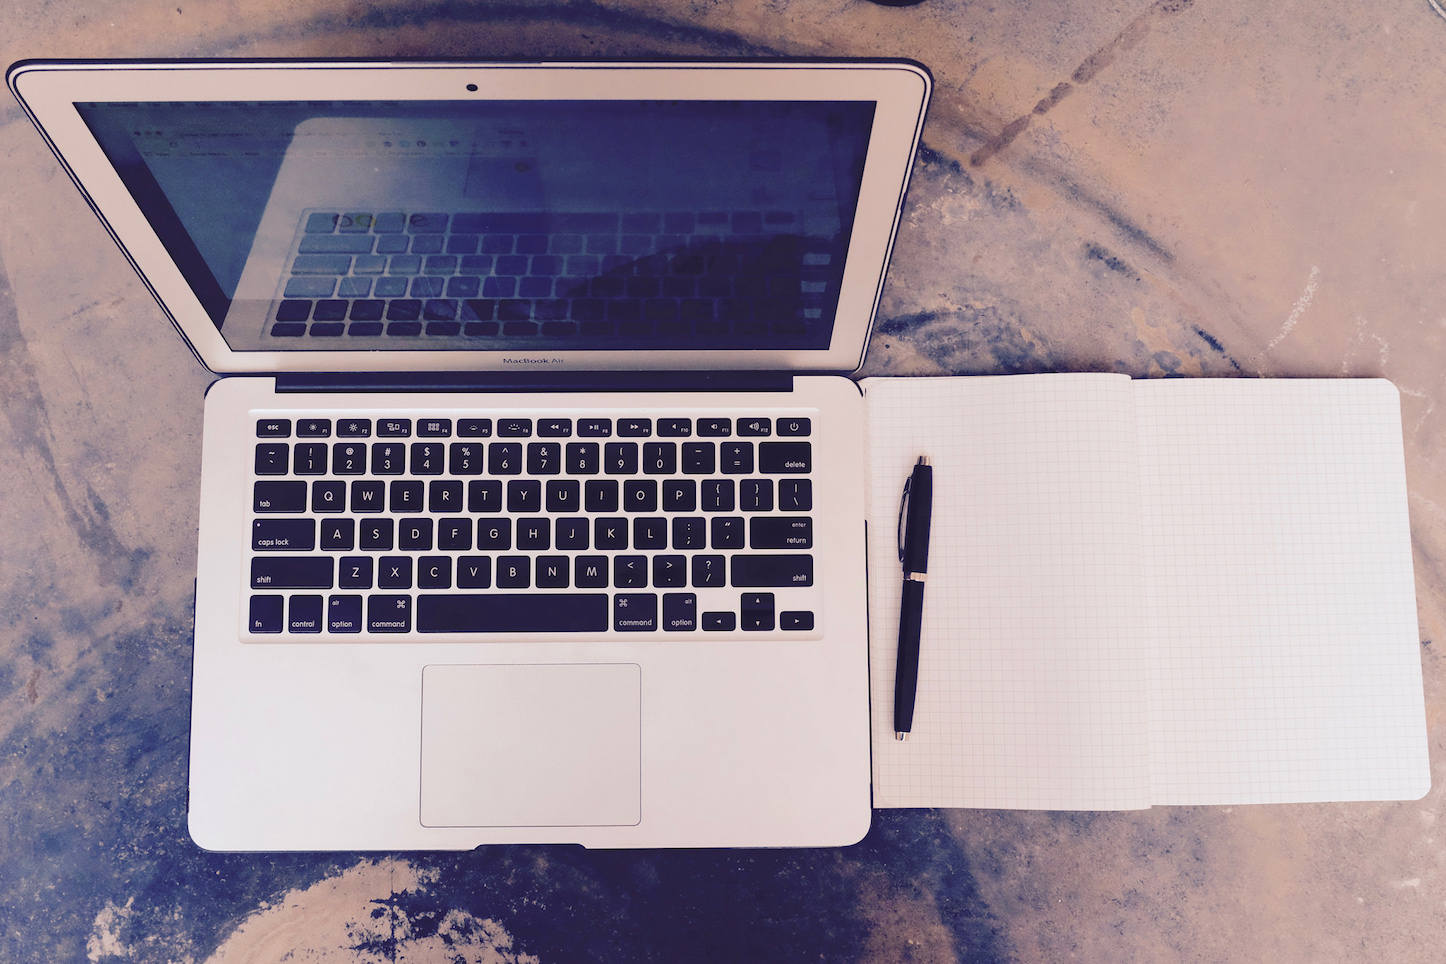 Macbook air and notebook